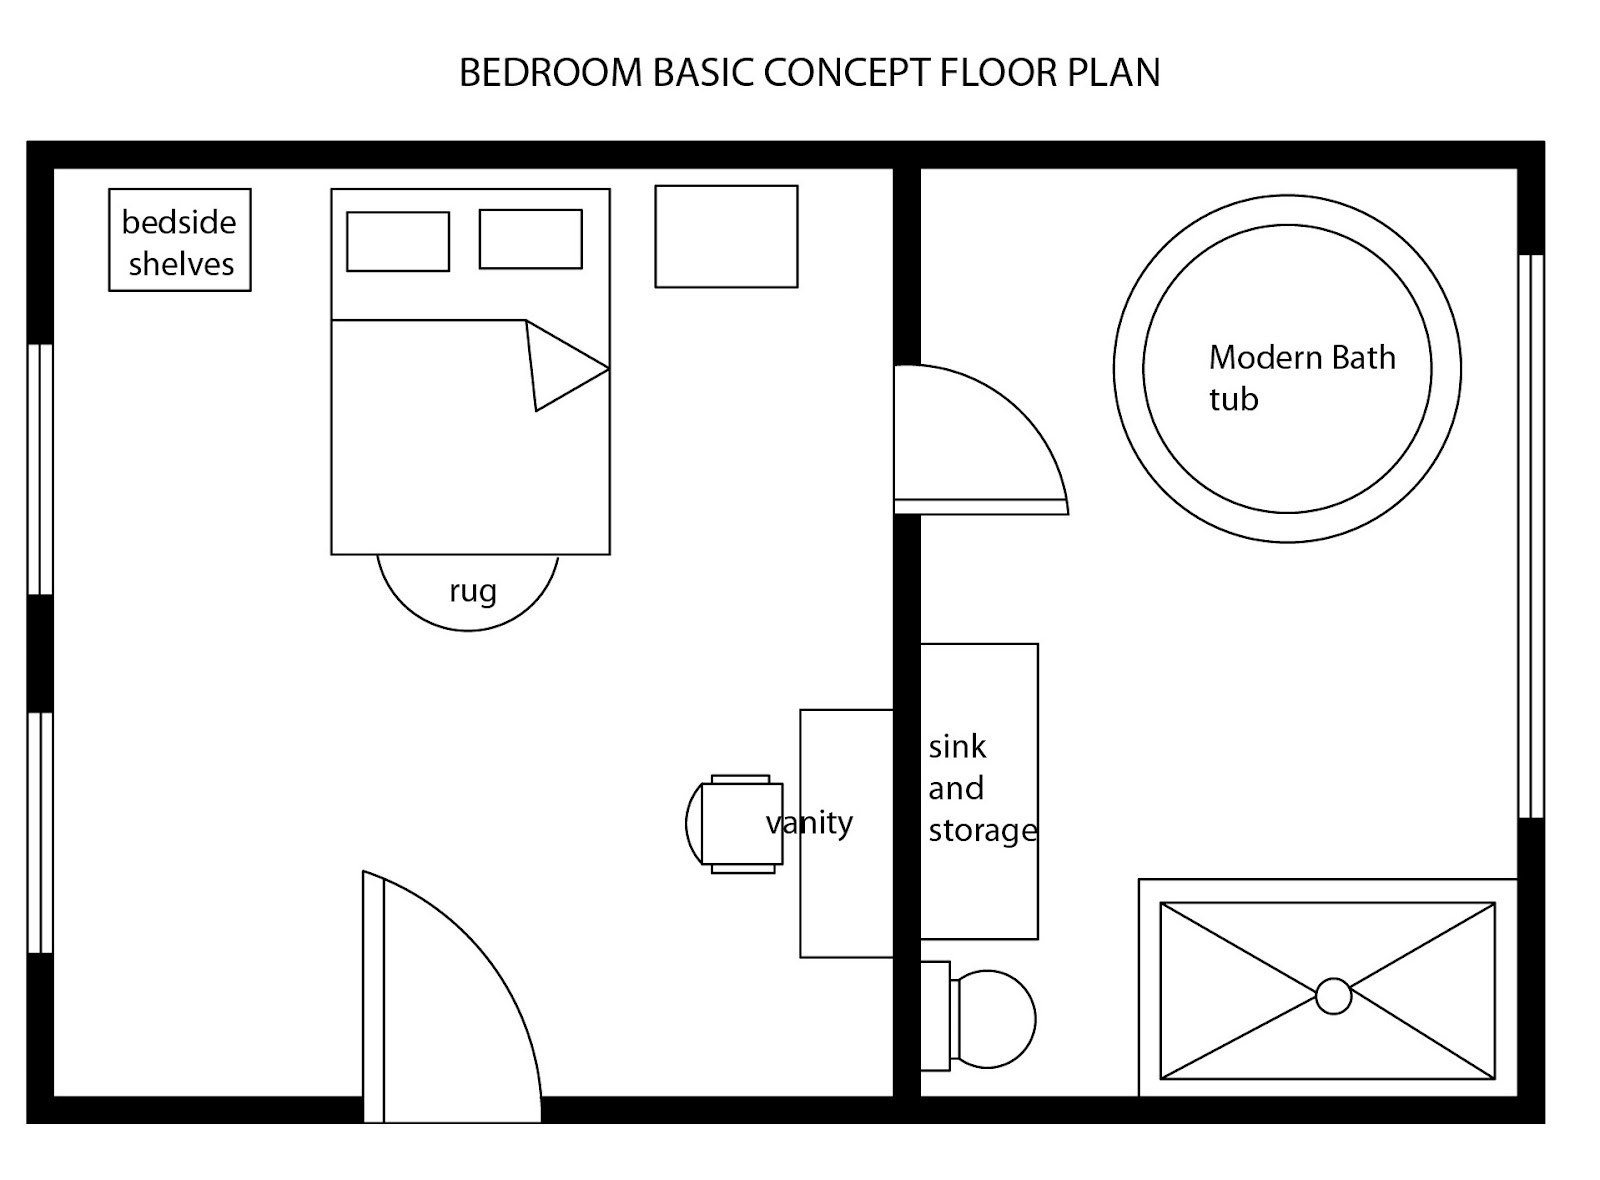 Interior design decor modern bedroom basic floor plan for Bedroom planner